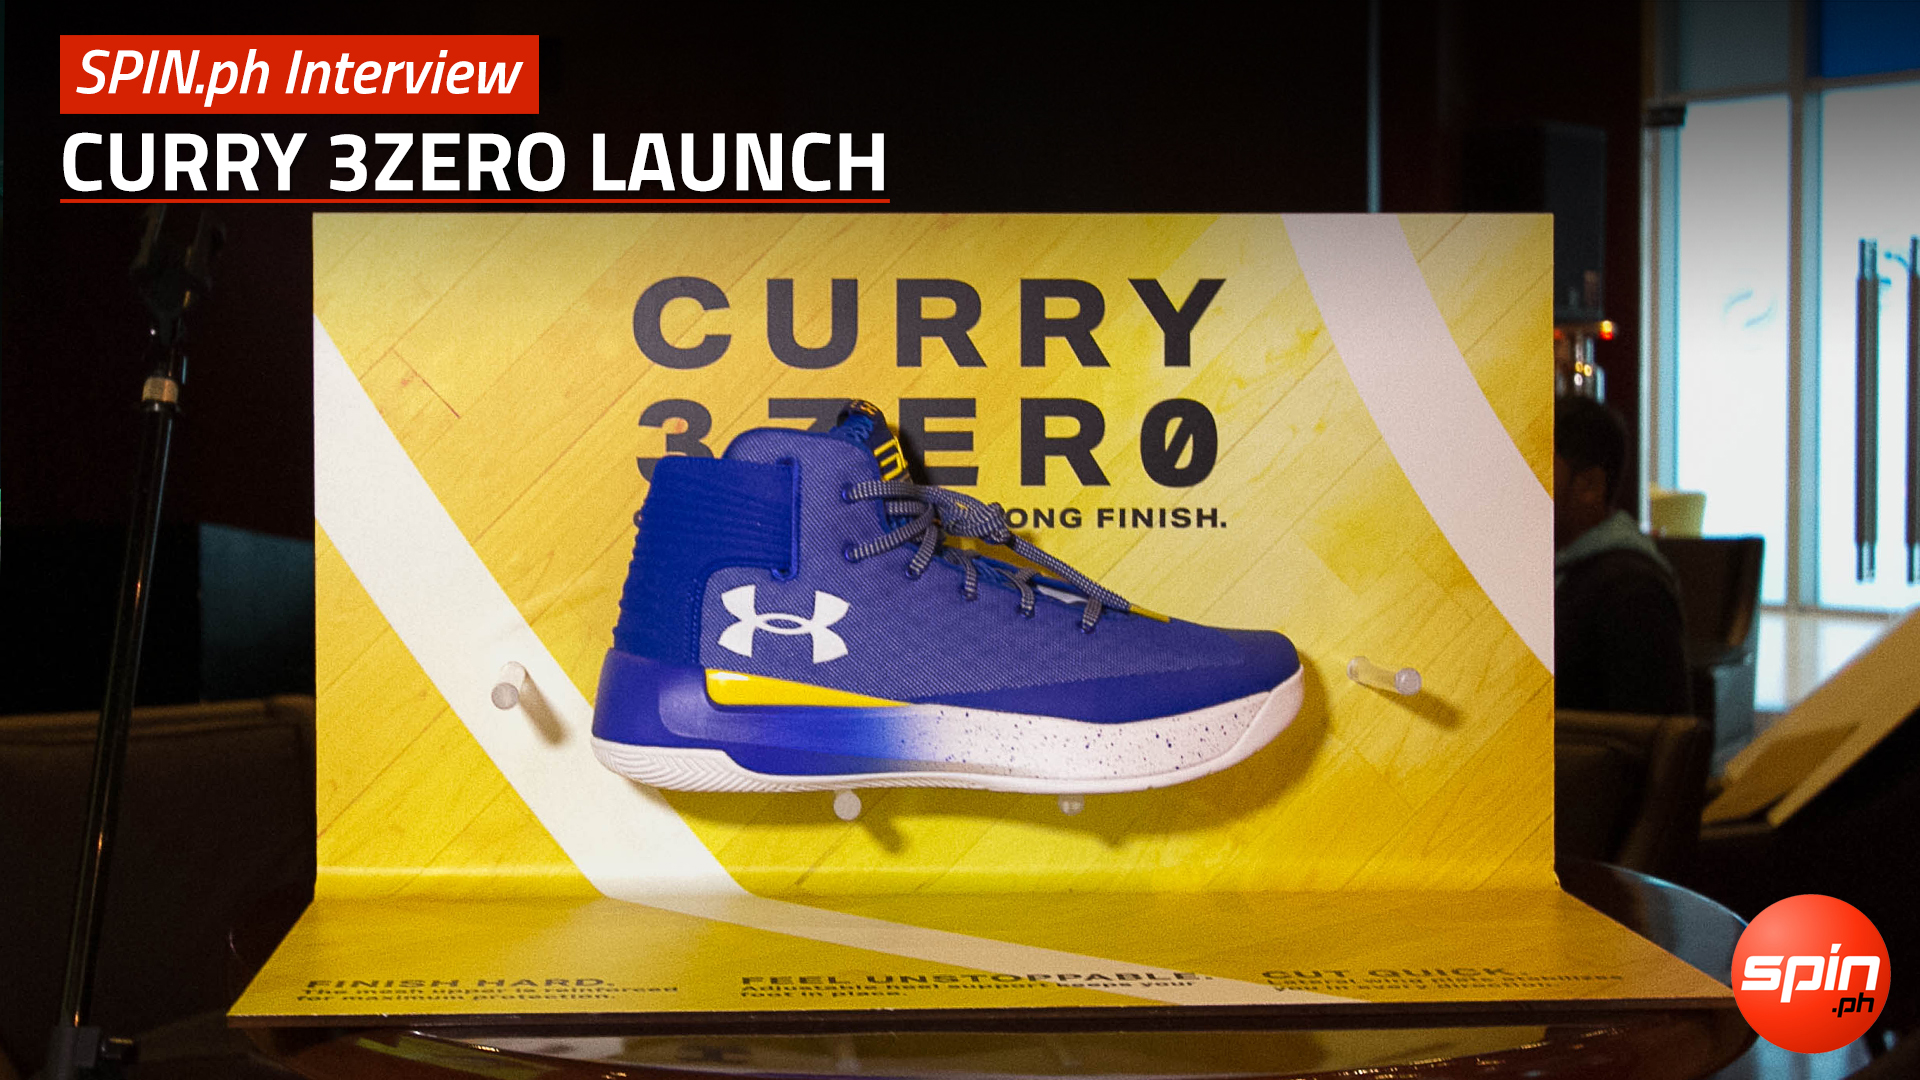 SPIN.ph Interview: Curry 3Zero launch